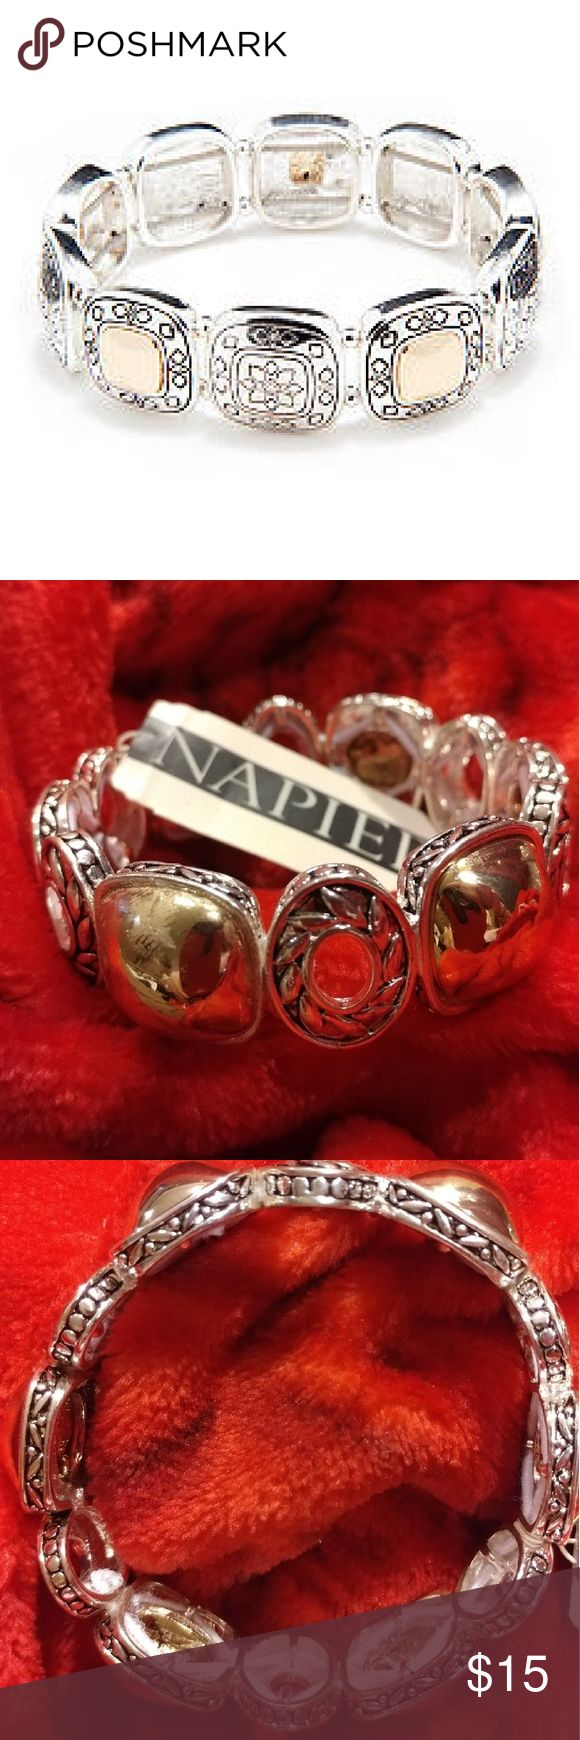 Napier Stretch Bracelet   Two tones This two tone stretch bracelet is a distinctive blend of gold-tone and silver-tone. With its featured etched design, this stretch bracelet is sure to be an everyday favorite.  7.8-in. L  Slip-on  Polished finish  Two-tone metal  Imported napier Jewelry Bracelets